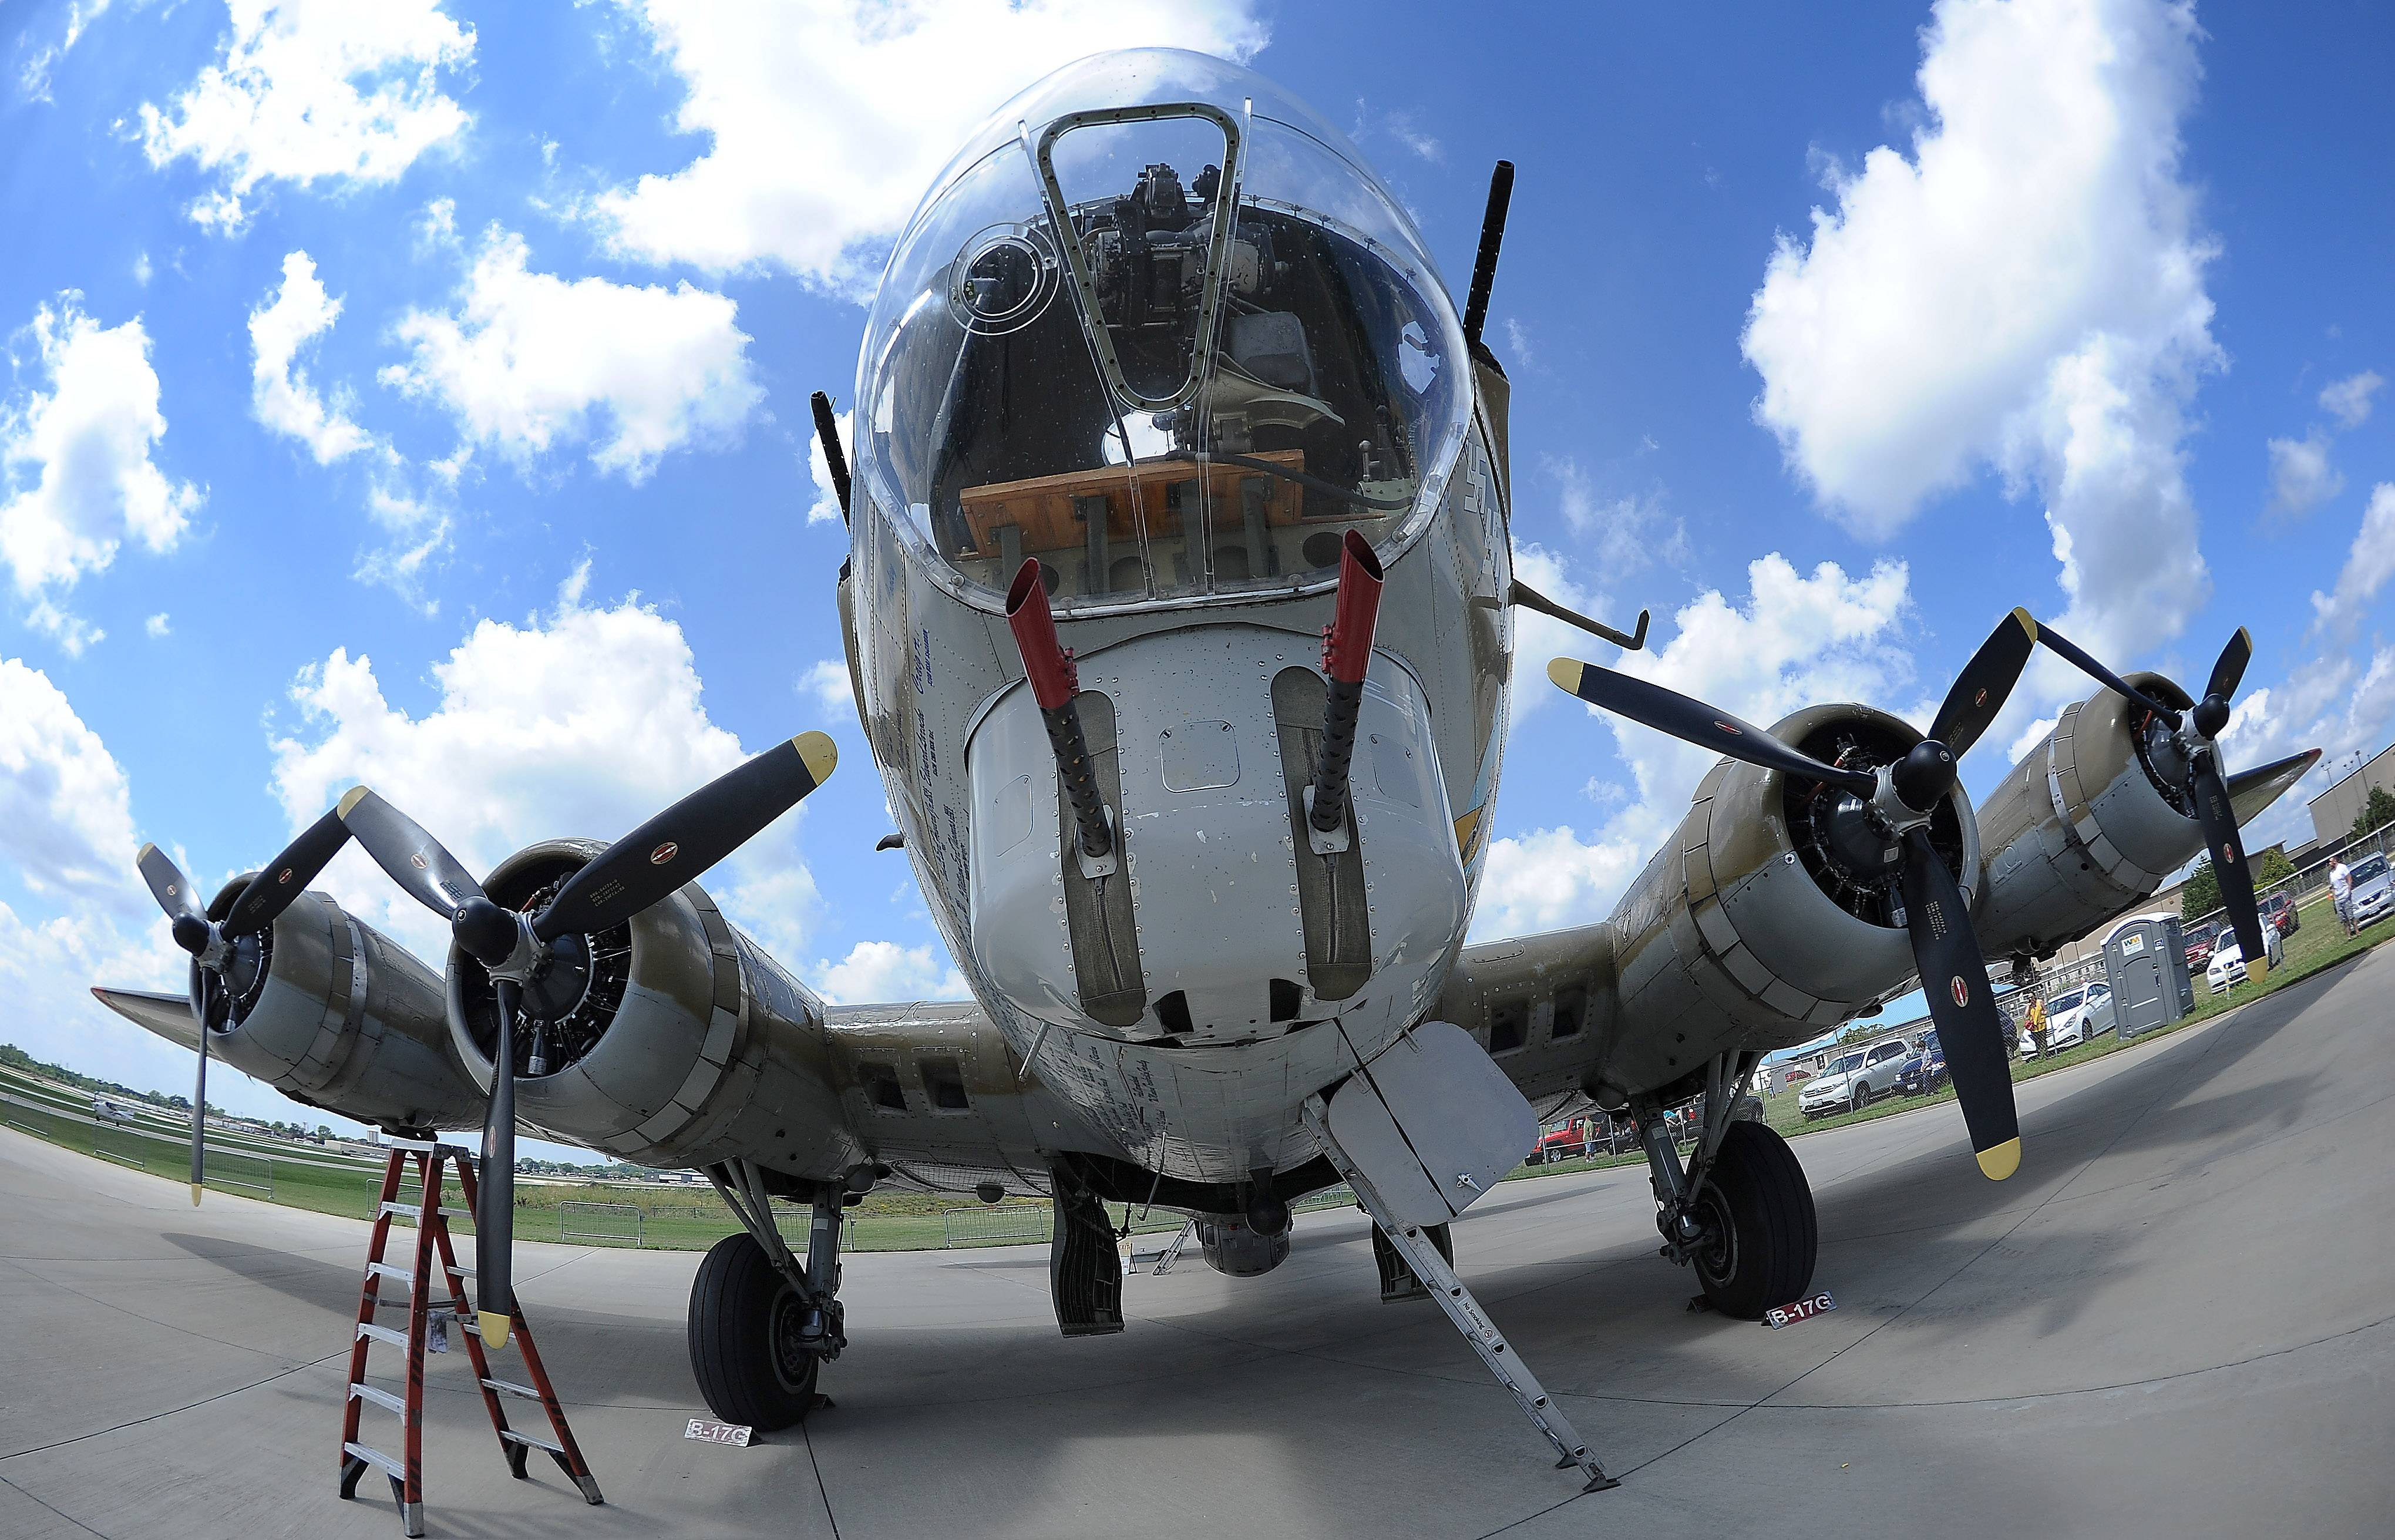 The vintage B-17 Flying Fortress stopped at Chicago Executive Airport in Wheeling on Monday.